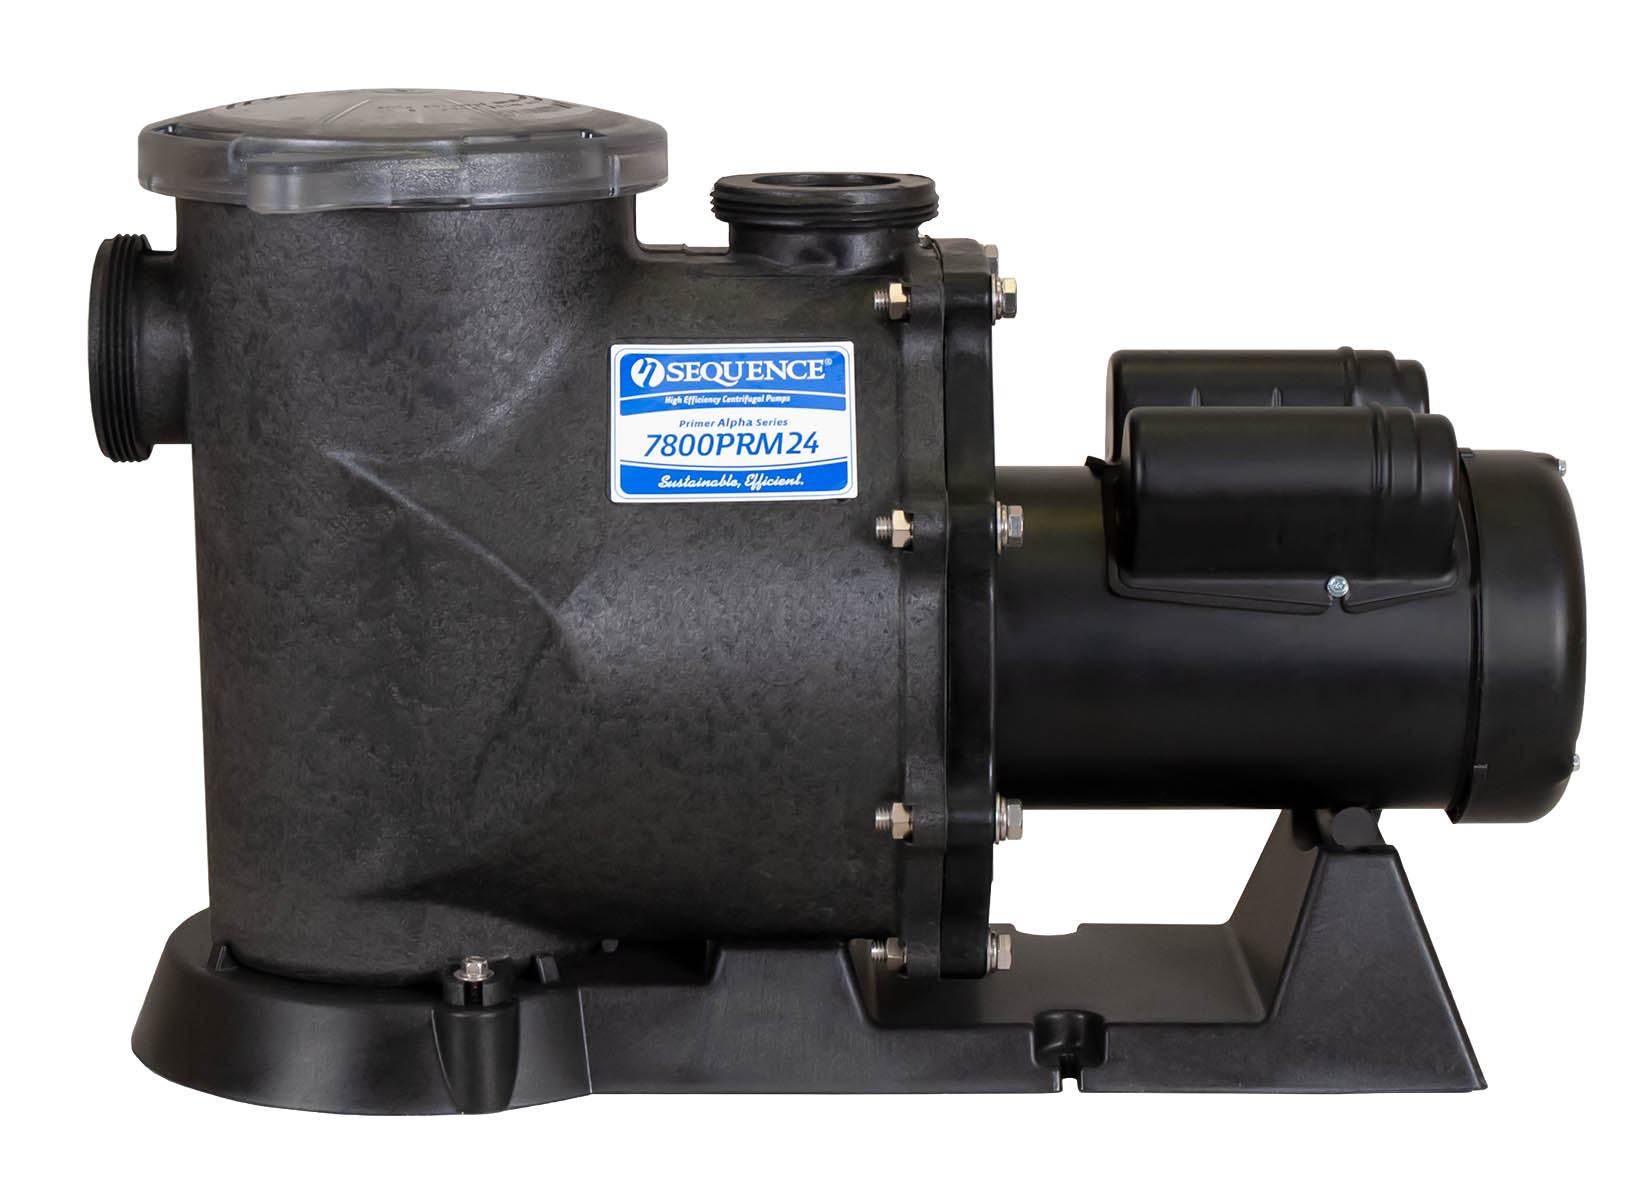 Sequence Primer Alpha Pump with black Leeson Motor right side view